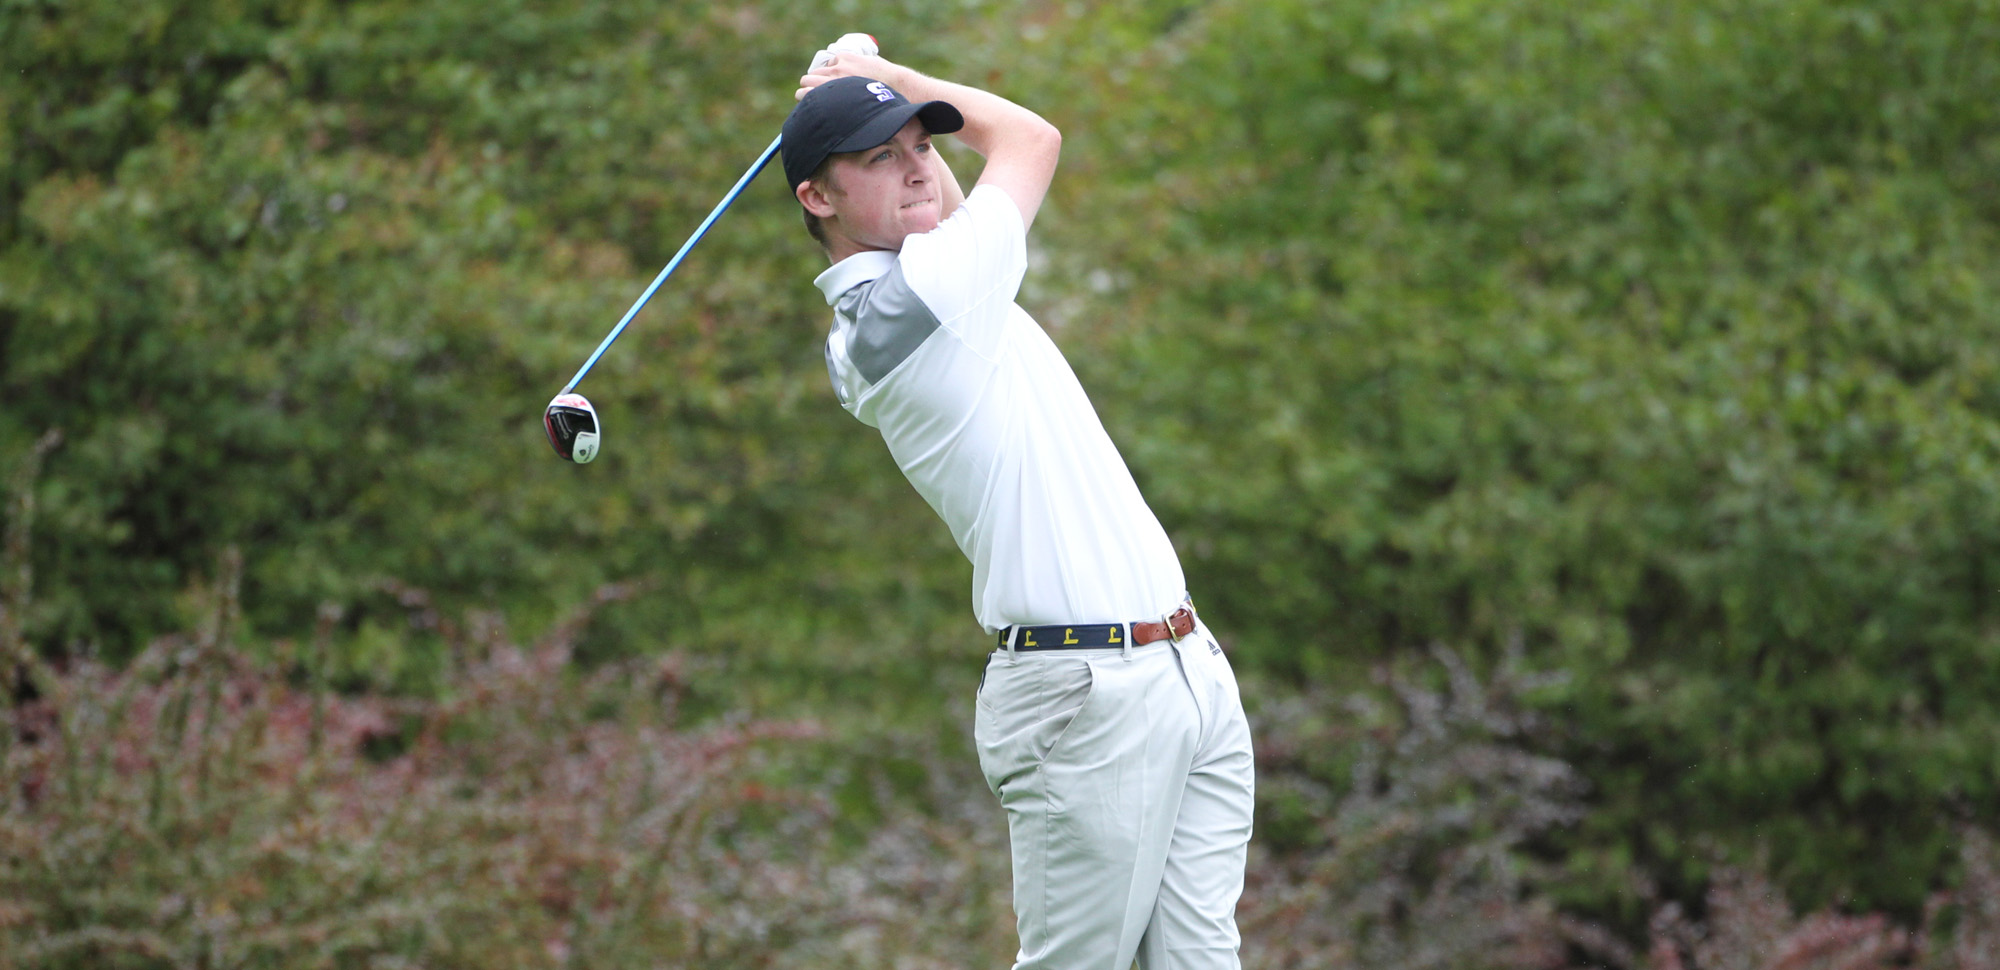 Sophomore Thomas McAuliffe led Scranton with a 79 on Saturday in the final round of the Landmark Conference Championships. © Photo by Timothy R. Dougherty / doubleeaglephotography.com